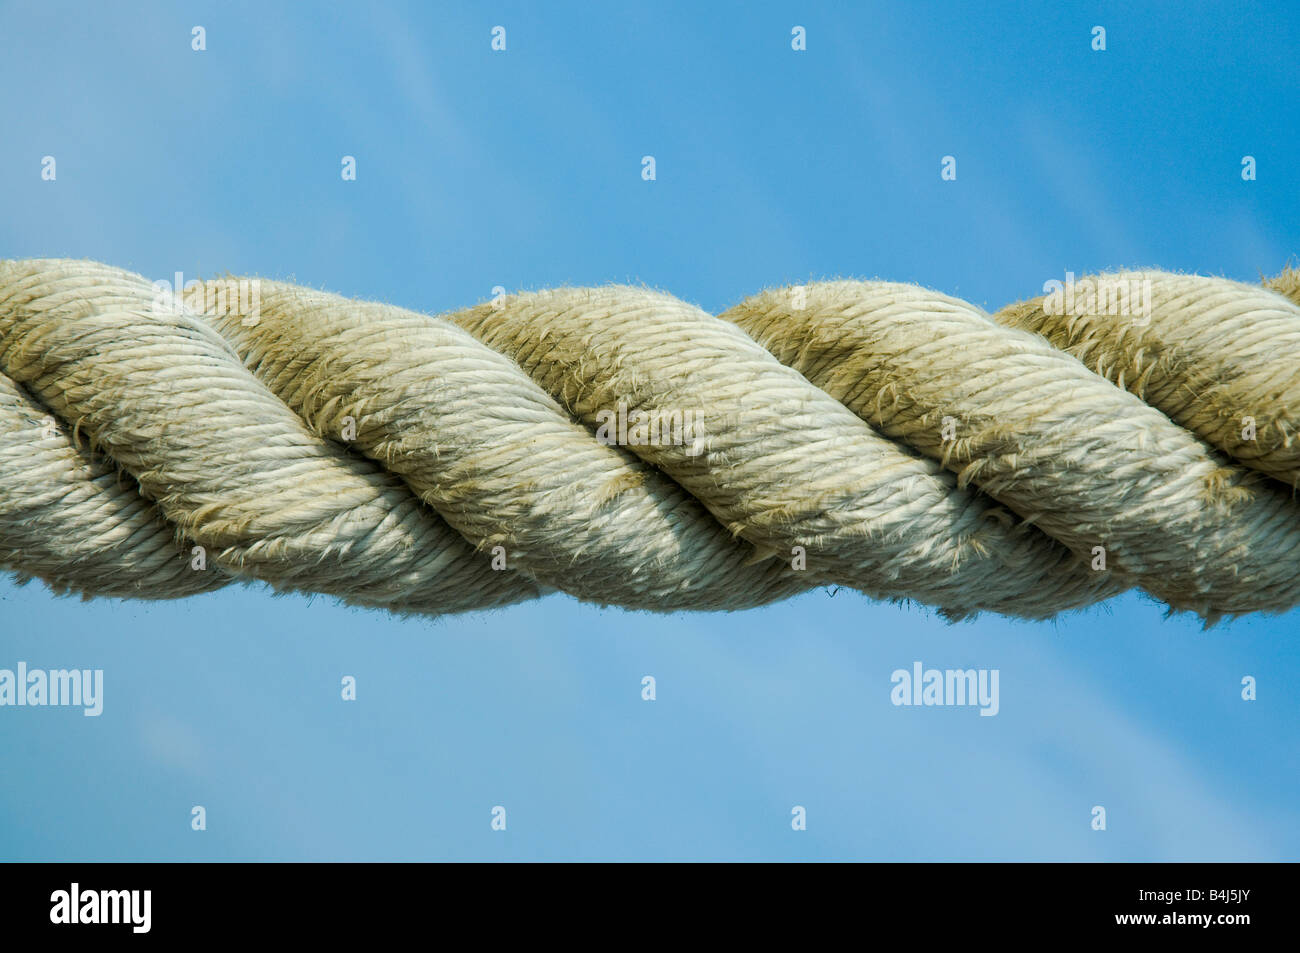 Rope against blue sky - Stock Image